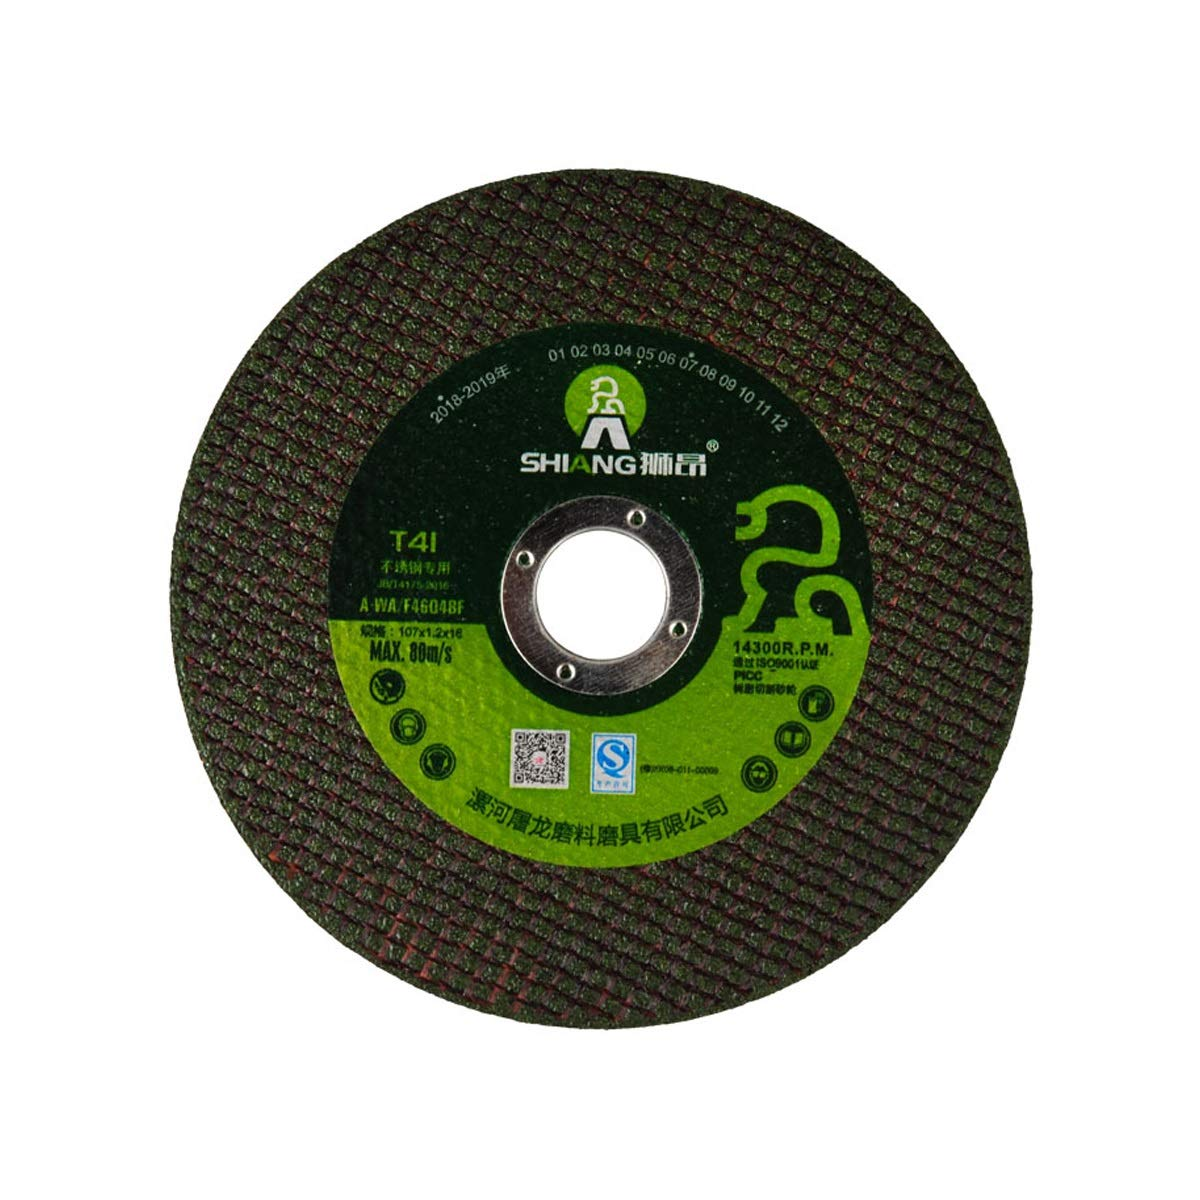 25 Per Pack CHENTAOCS Angle Grinder Cutting Piece Metal Stainless Steel Grinding Piece Grinding Wheel Piece Color : Green